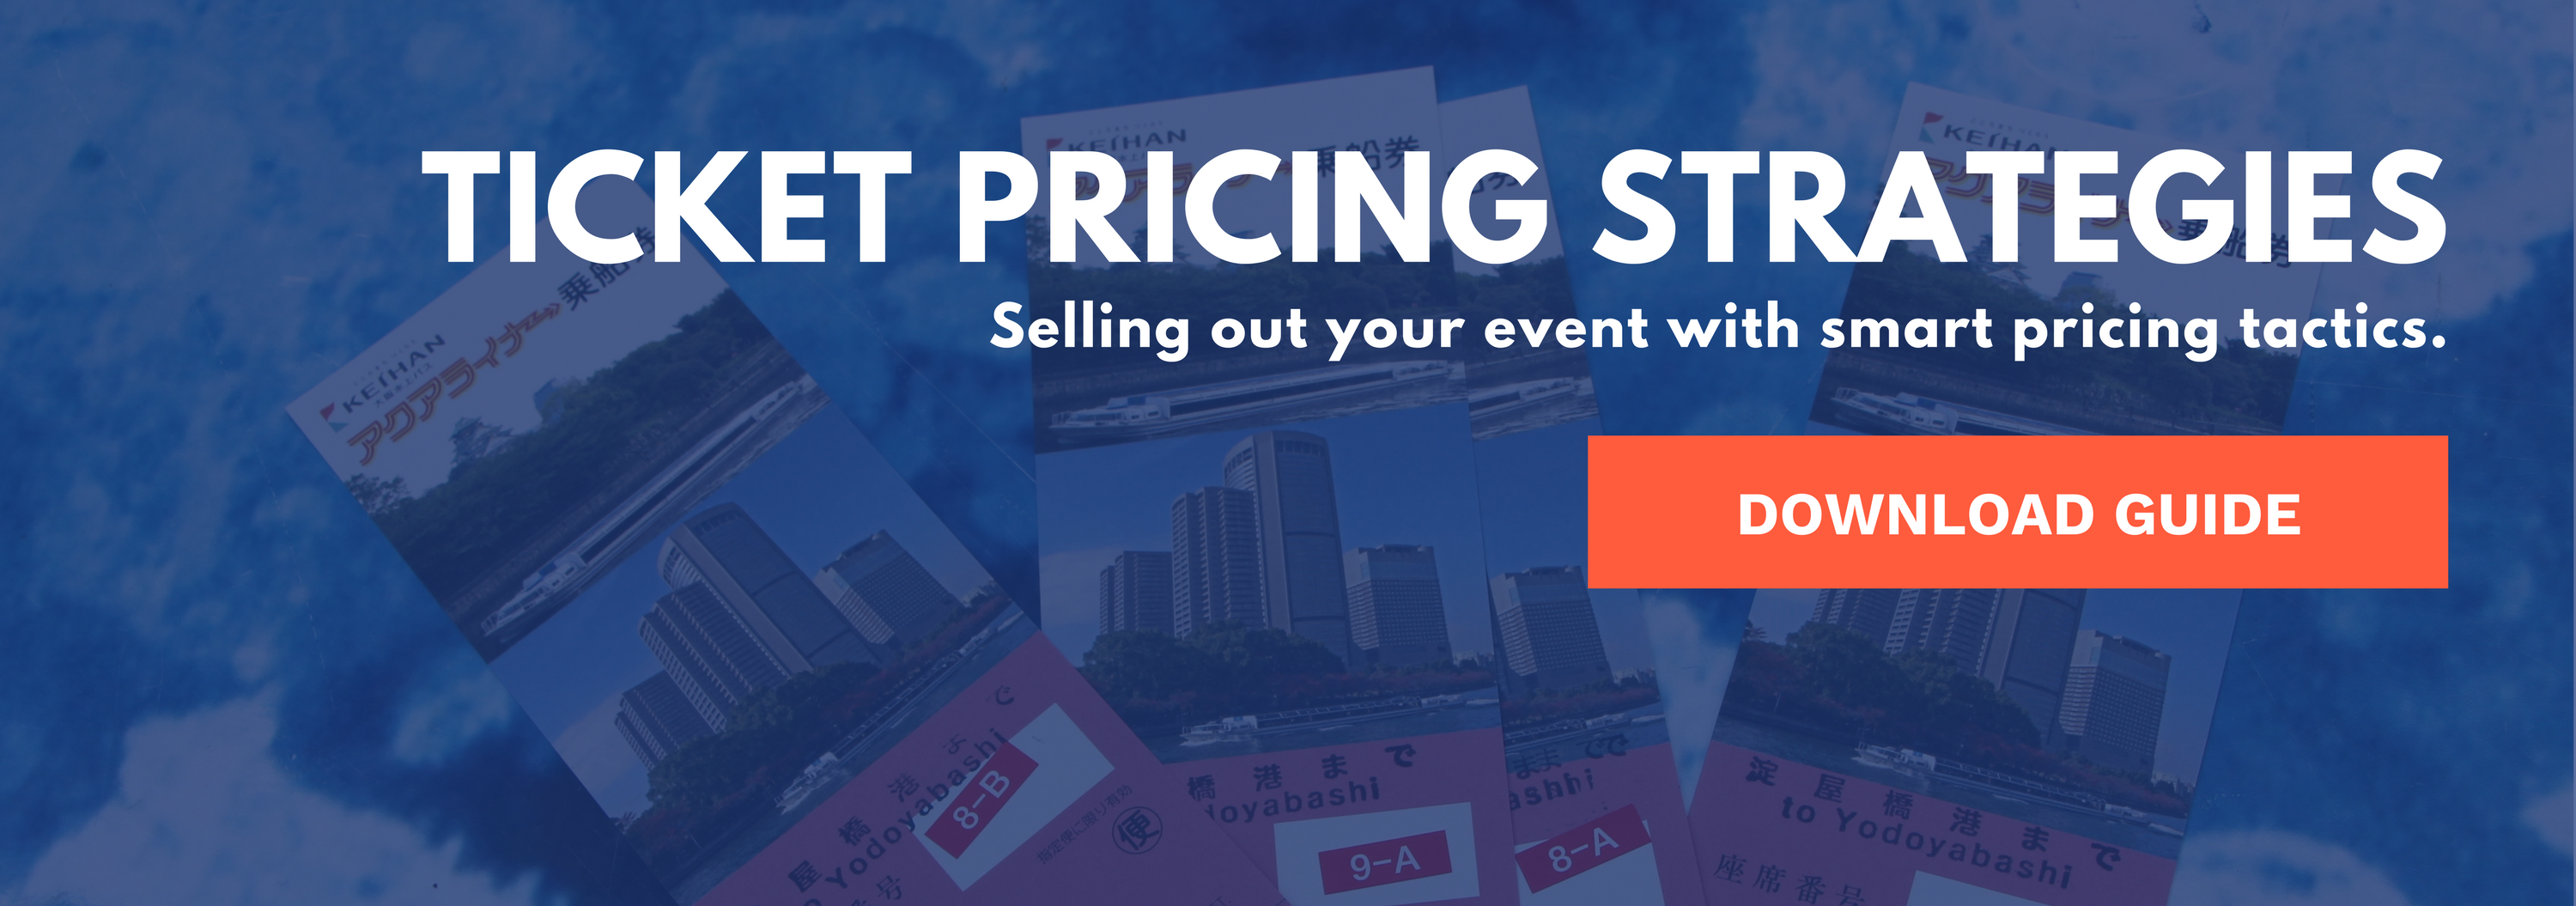 Ticket Pricing Strategies Guide